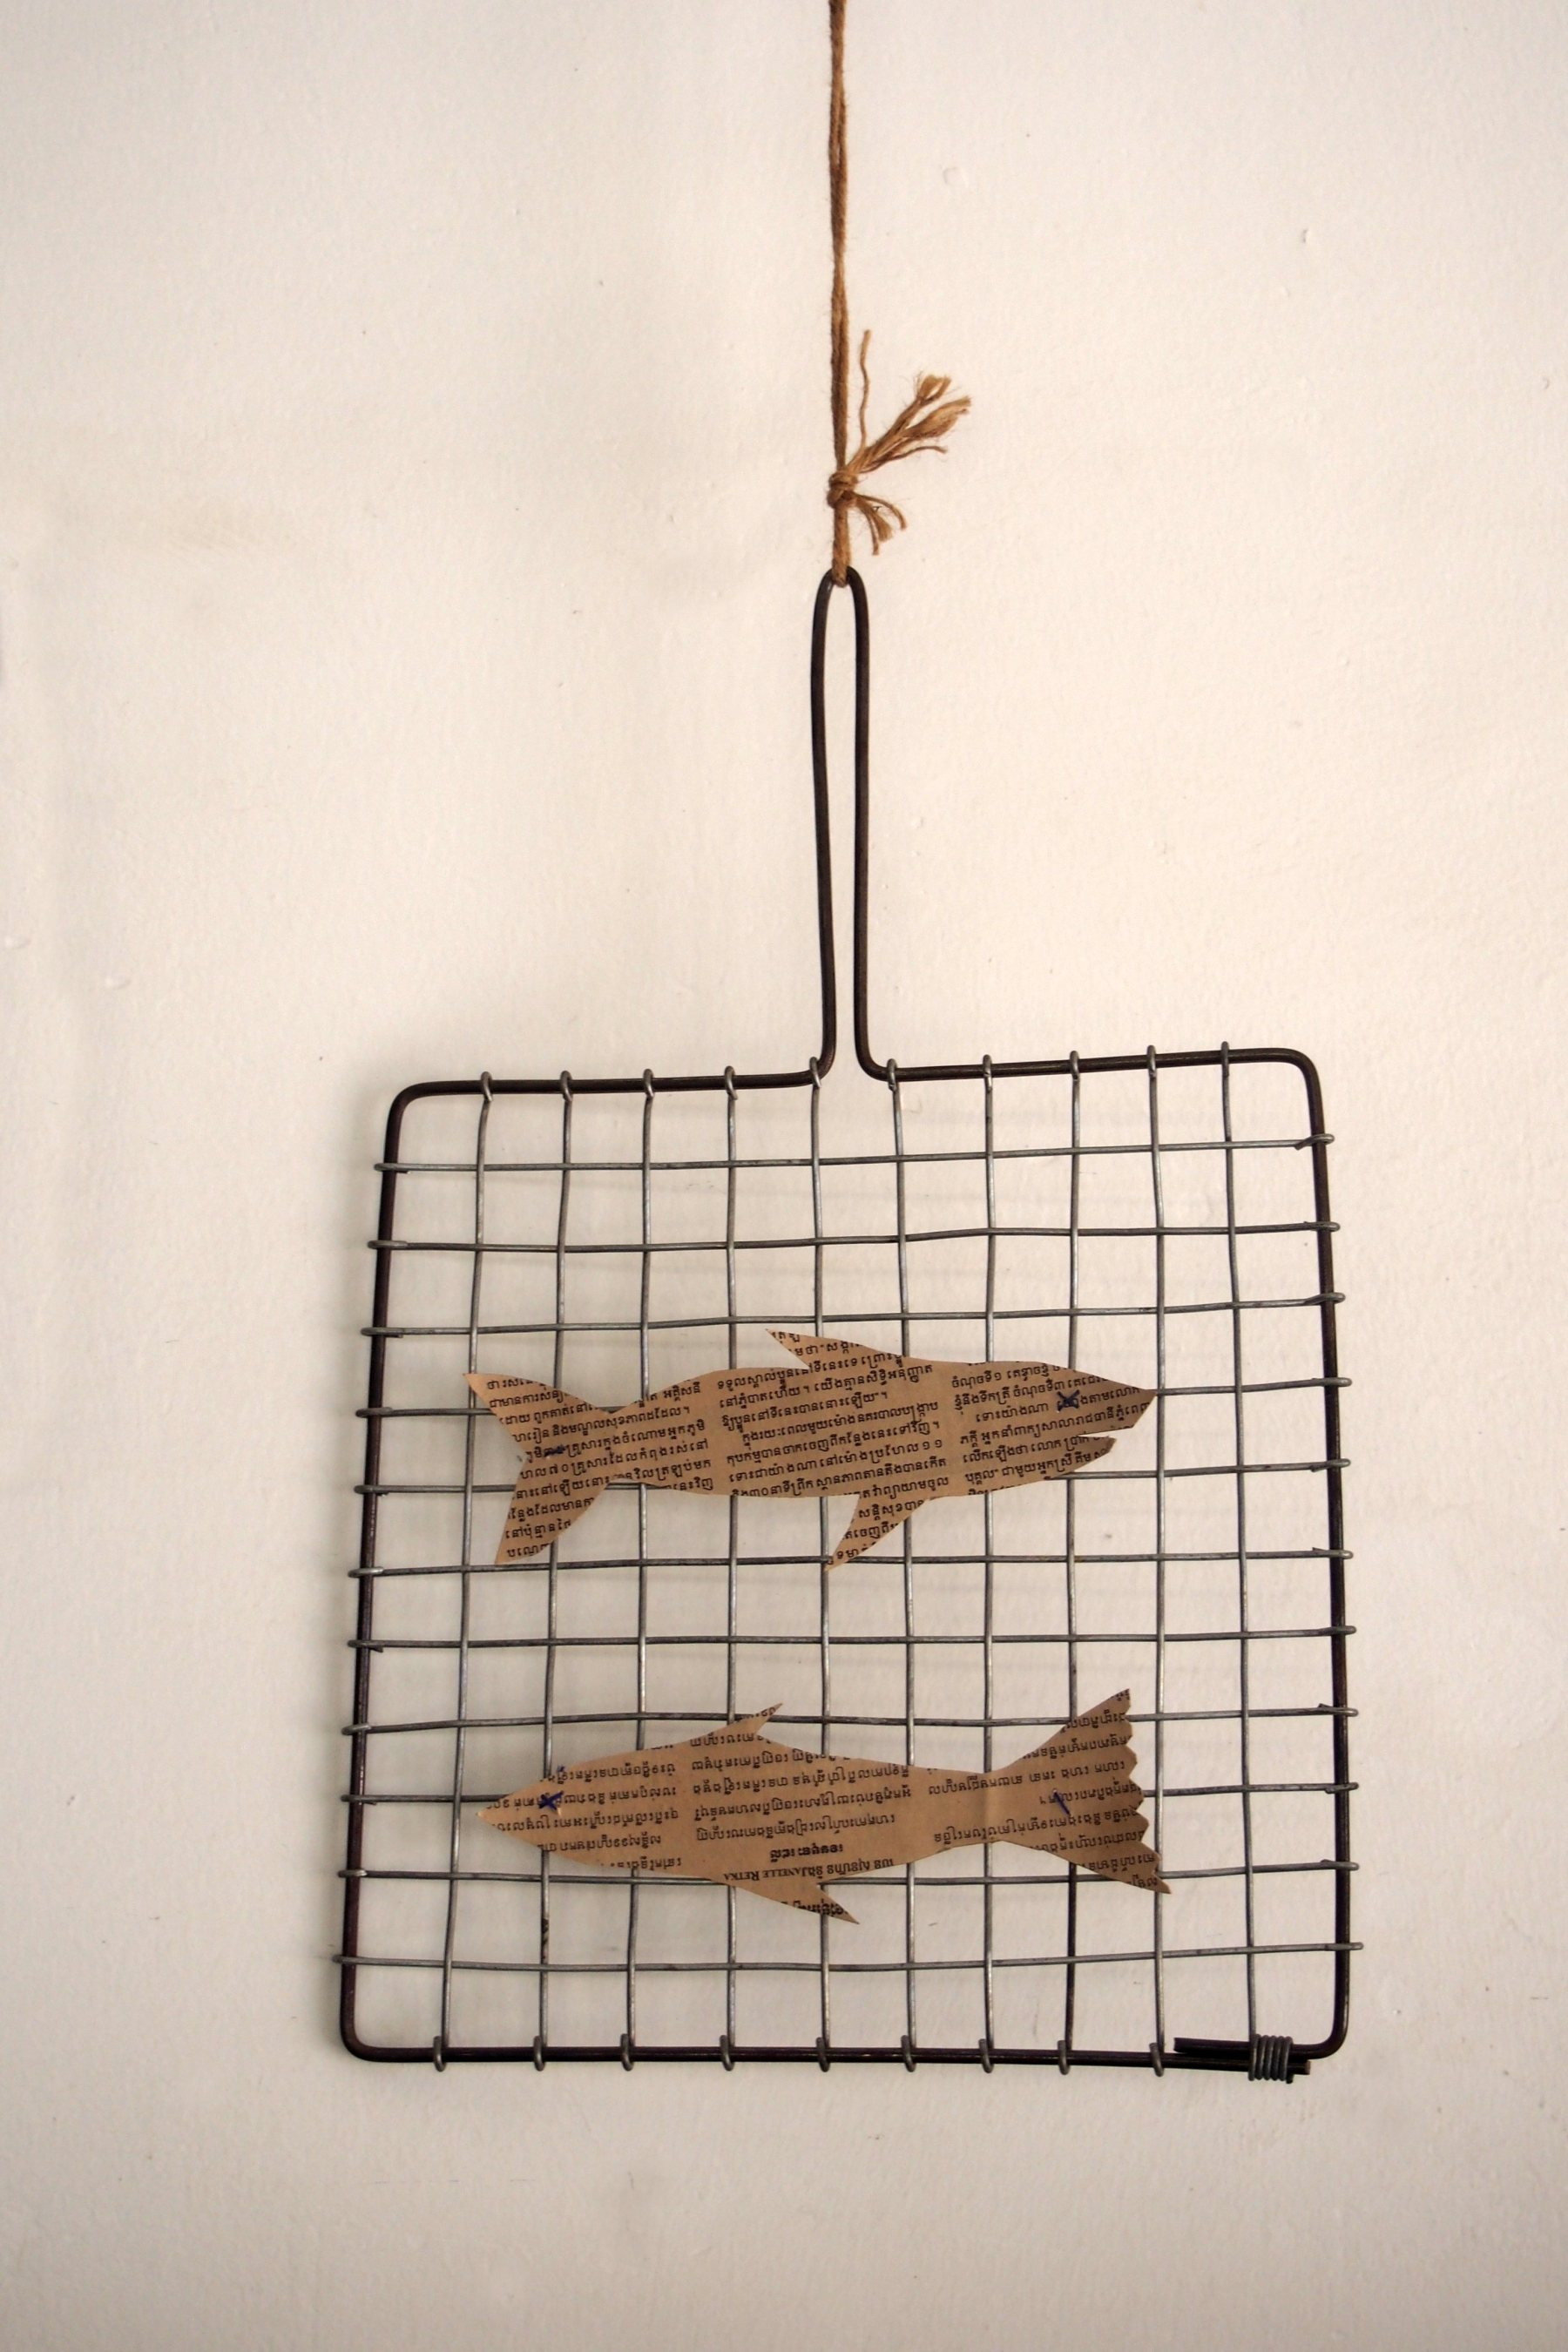 fish-type-morrison-polkinghorne-two-paper-fishes